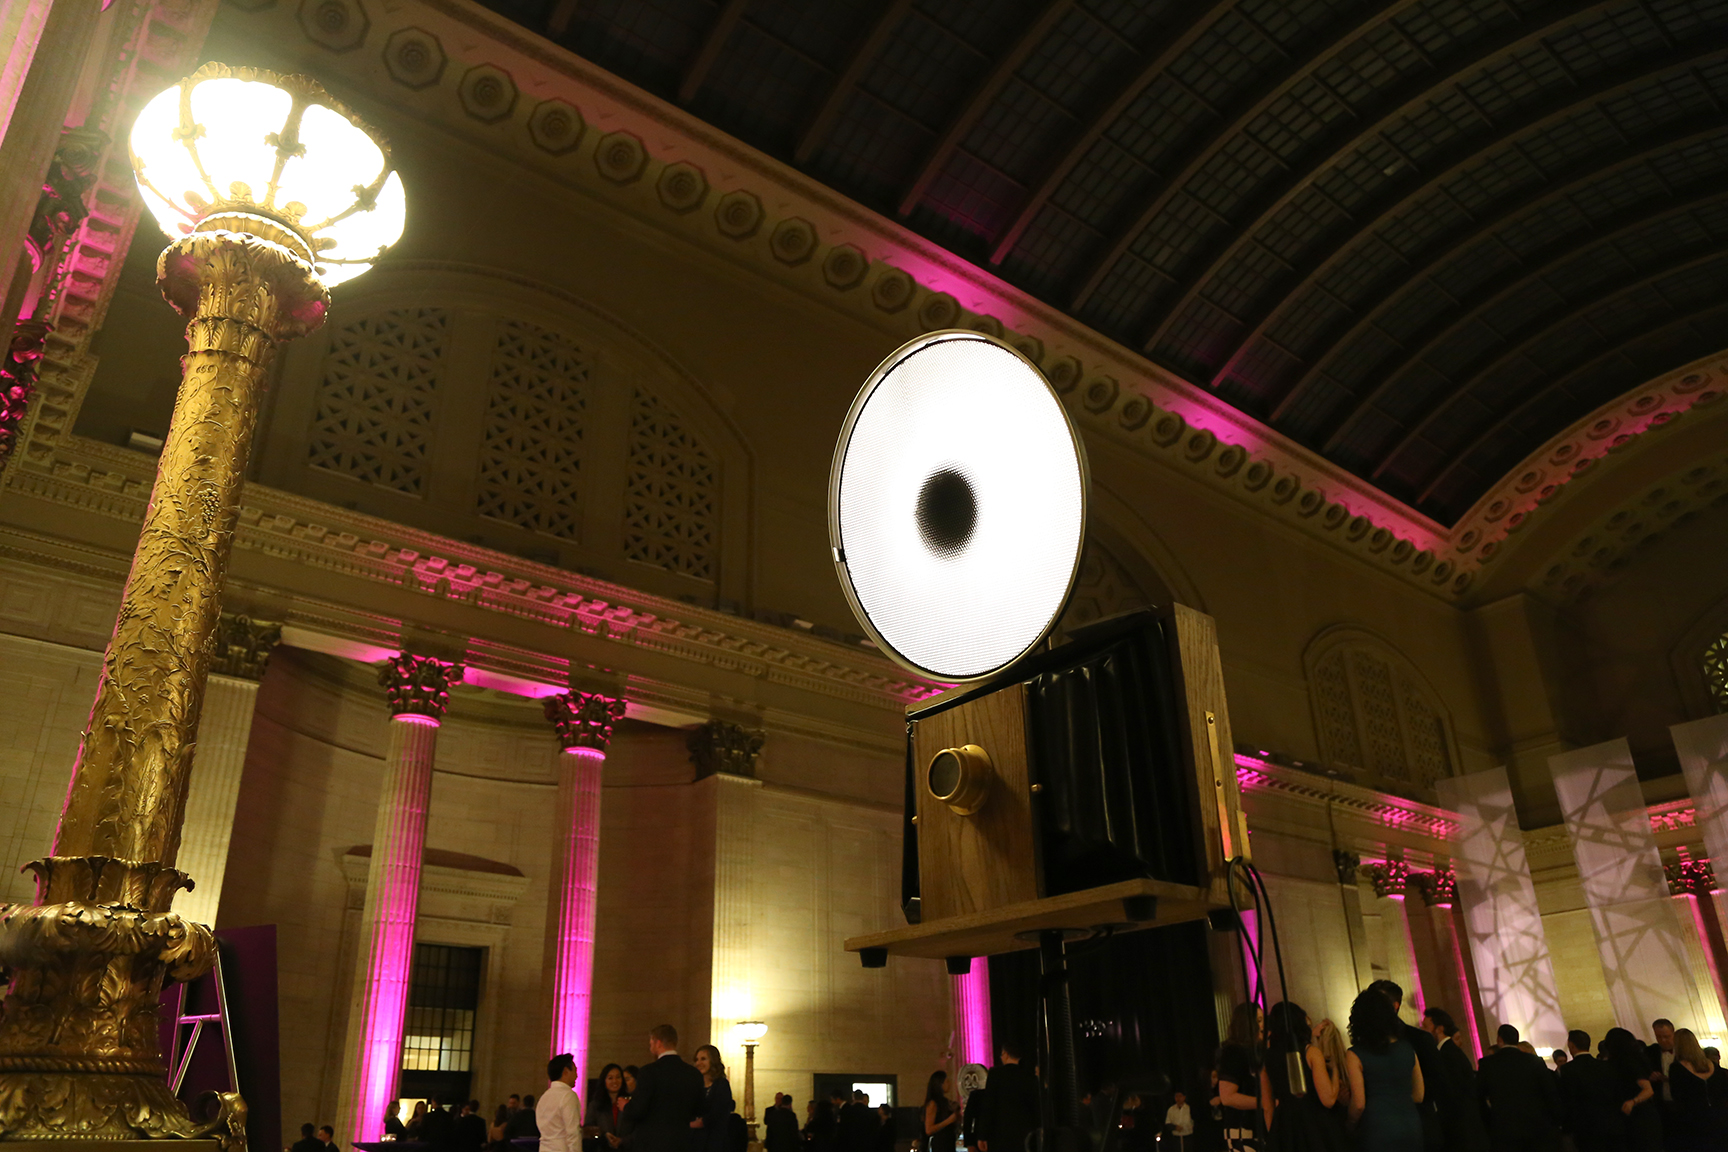 A Fotio Photo Booth setup in the Great Hall for a Union Station Chicago corporate event rental.